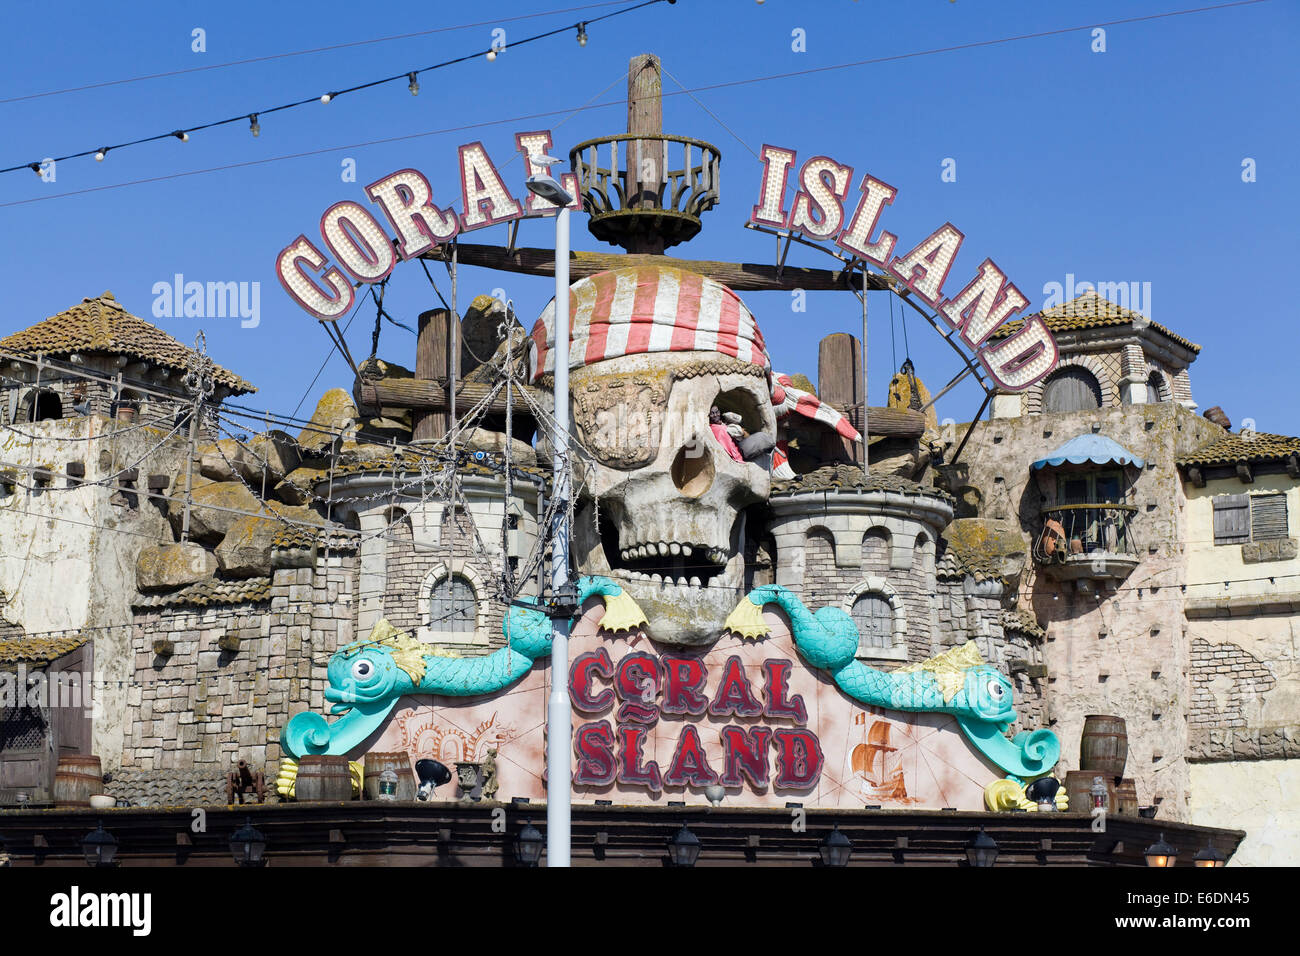 Coral Island Along The Seafront At Blackpool Lancashire Uk Stock